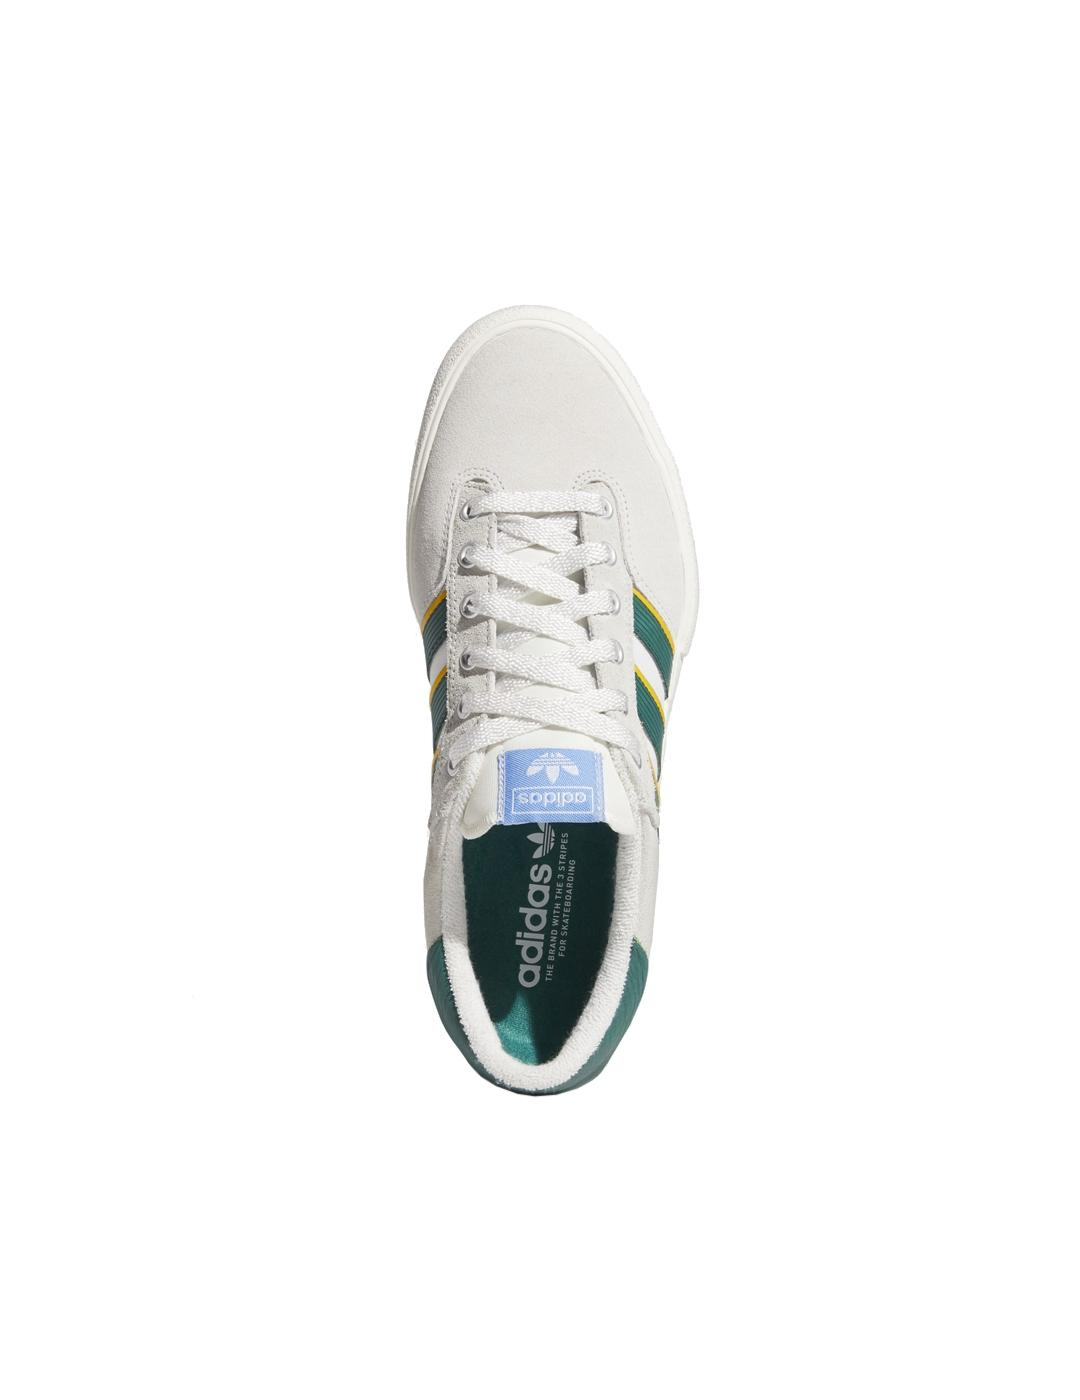 Zapatilla Adidas Matchbreak Super